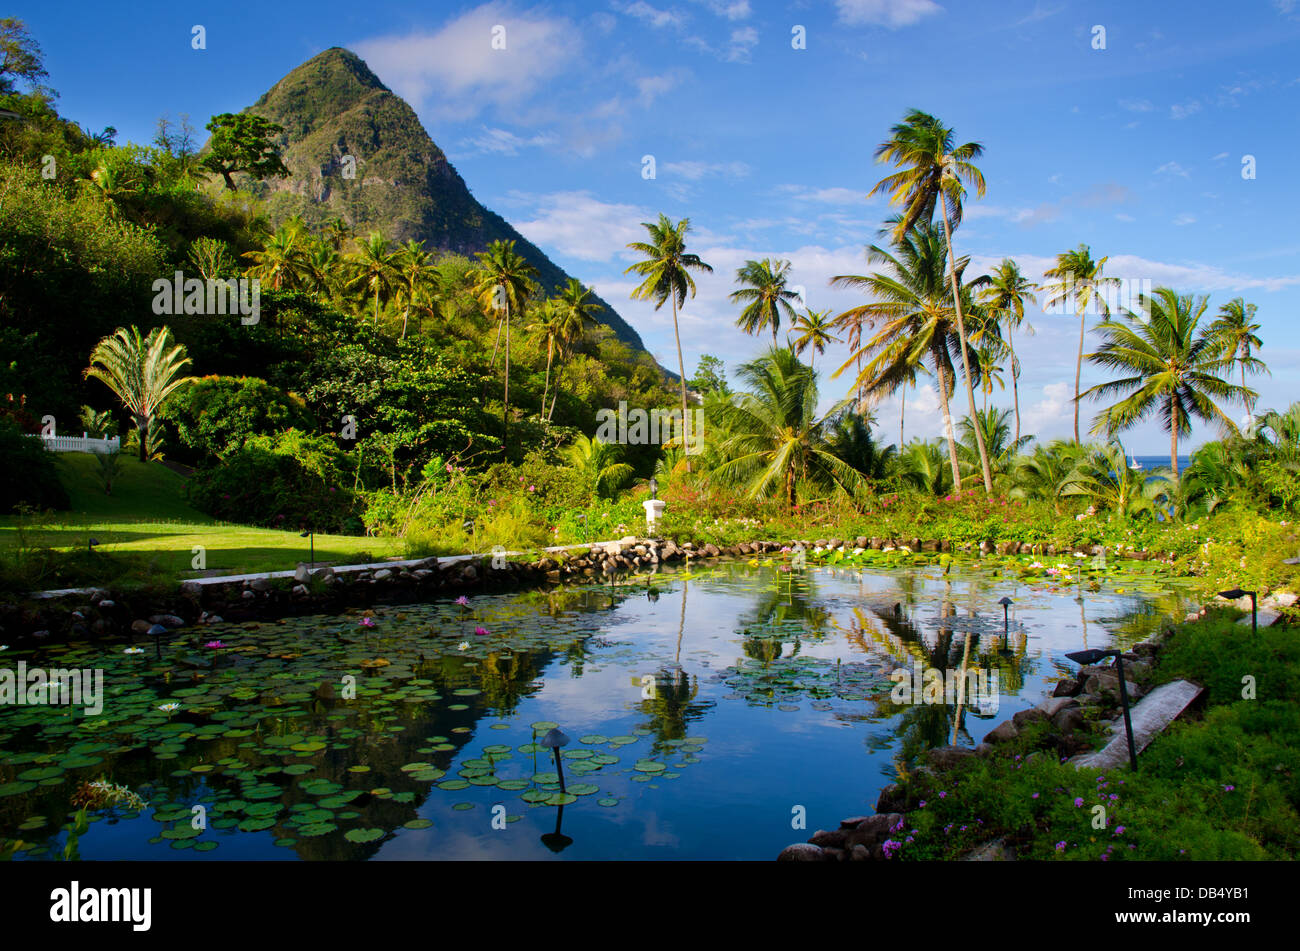 St Lucia - Stock Image